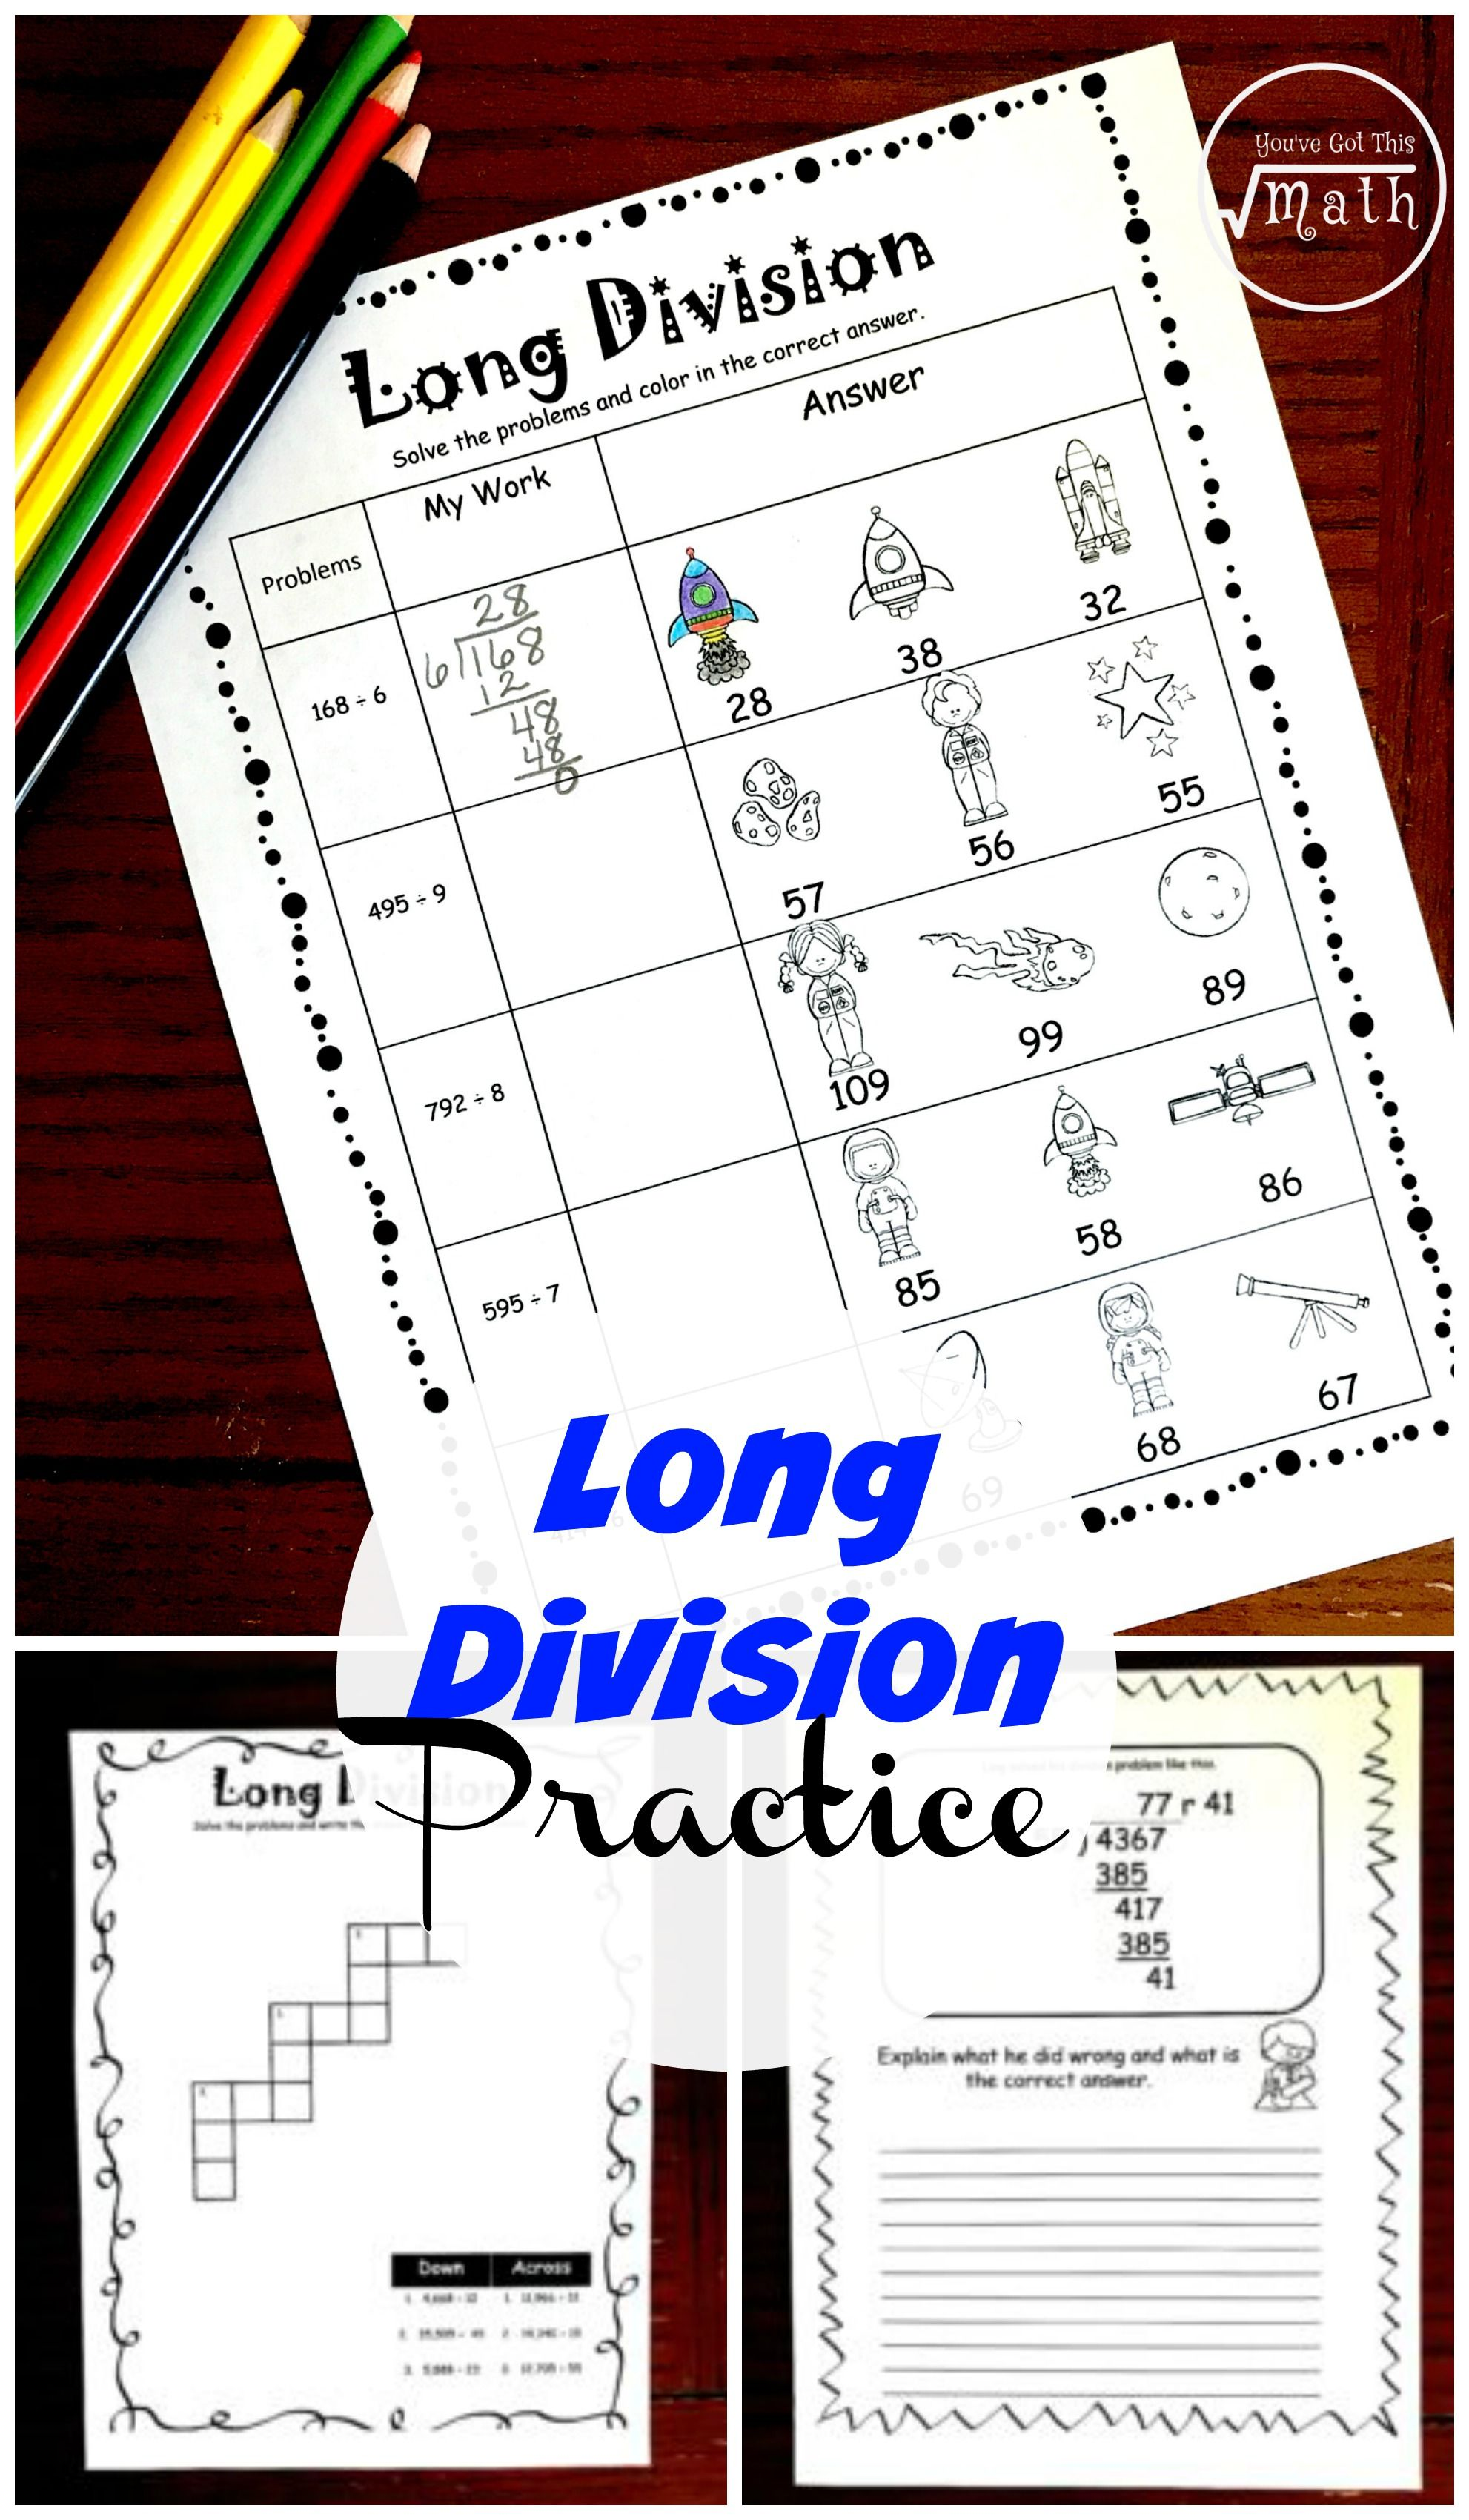 These Division Worksheets Work On Long Division While